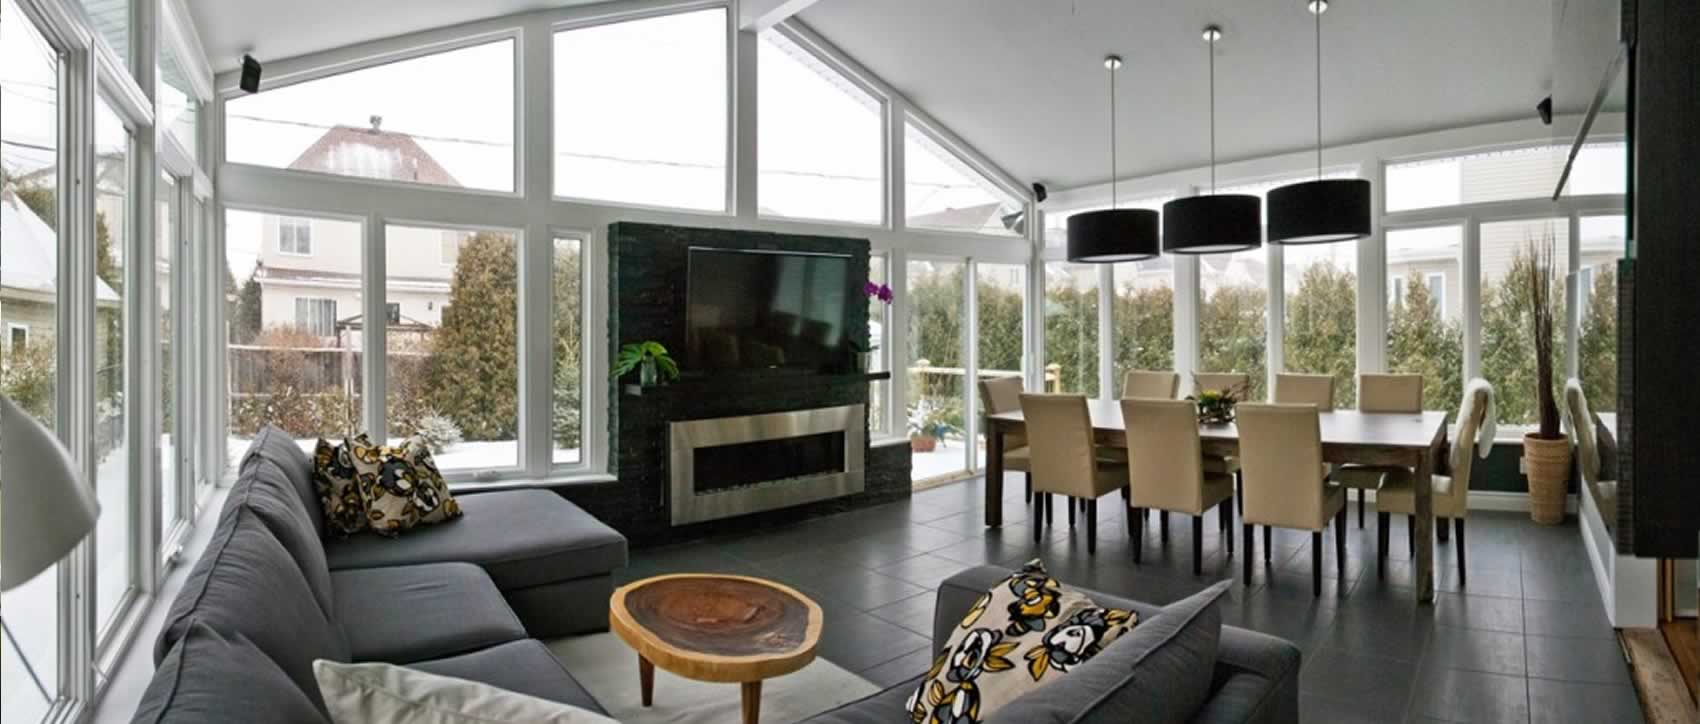 Pro Sunroom Designs in Pittsburgh Pro Sunroom Designs in Pittsburgh Pro Hom